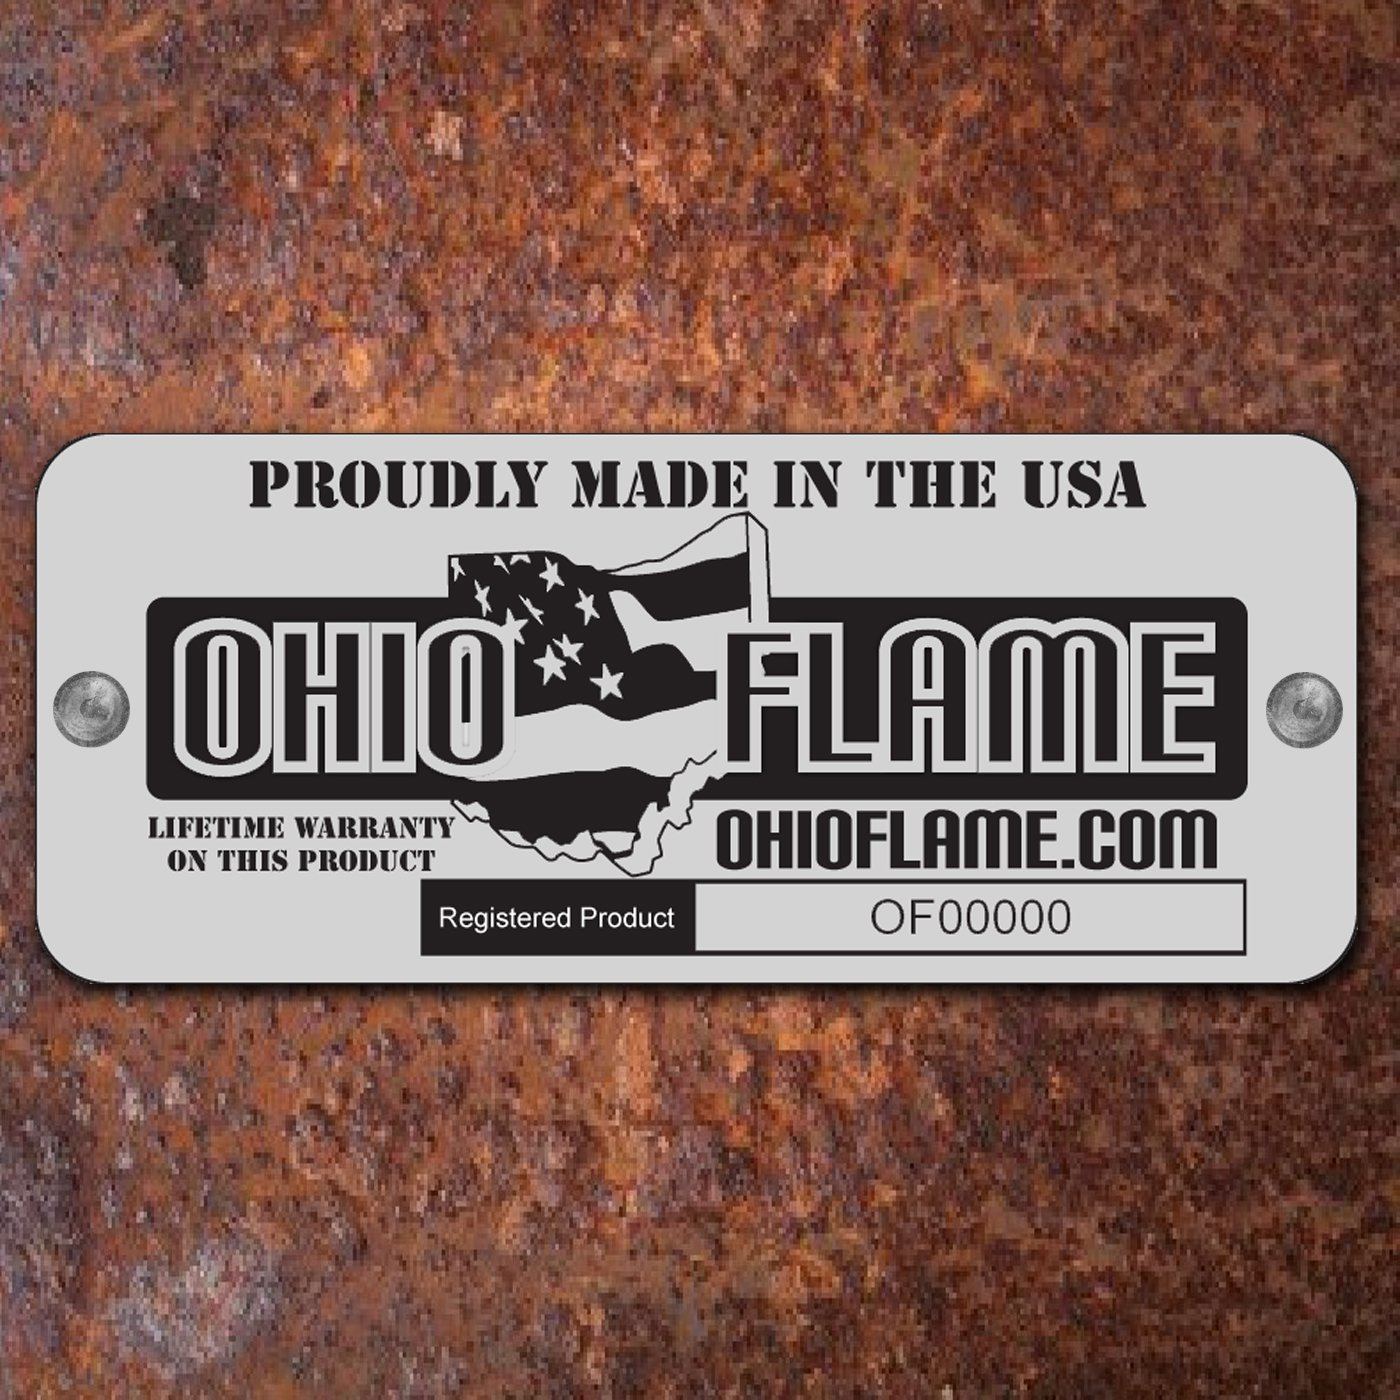 Ohio Flame 30 Patriot Fire Pit Made in USA – Natural Steel Finish